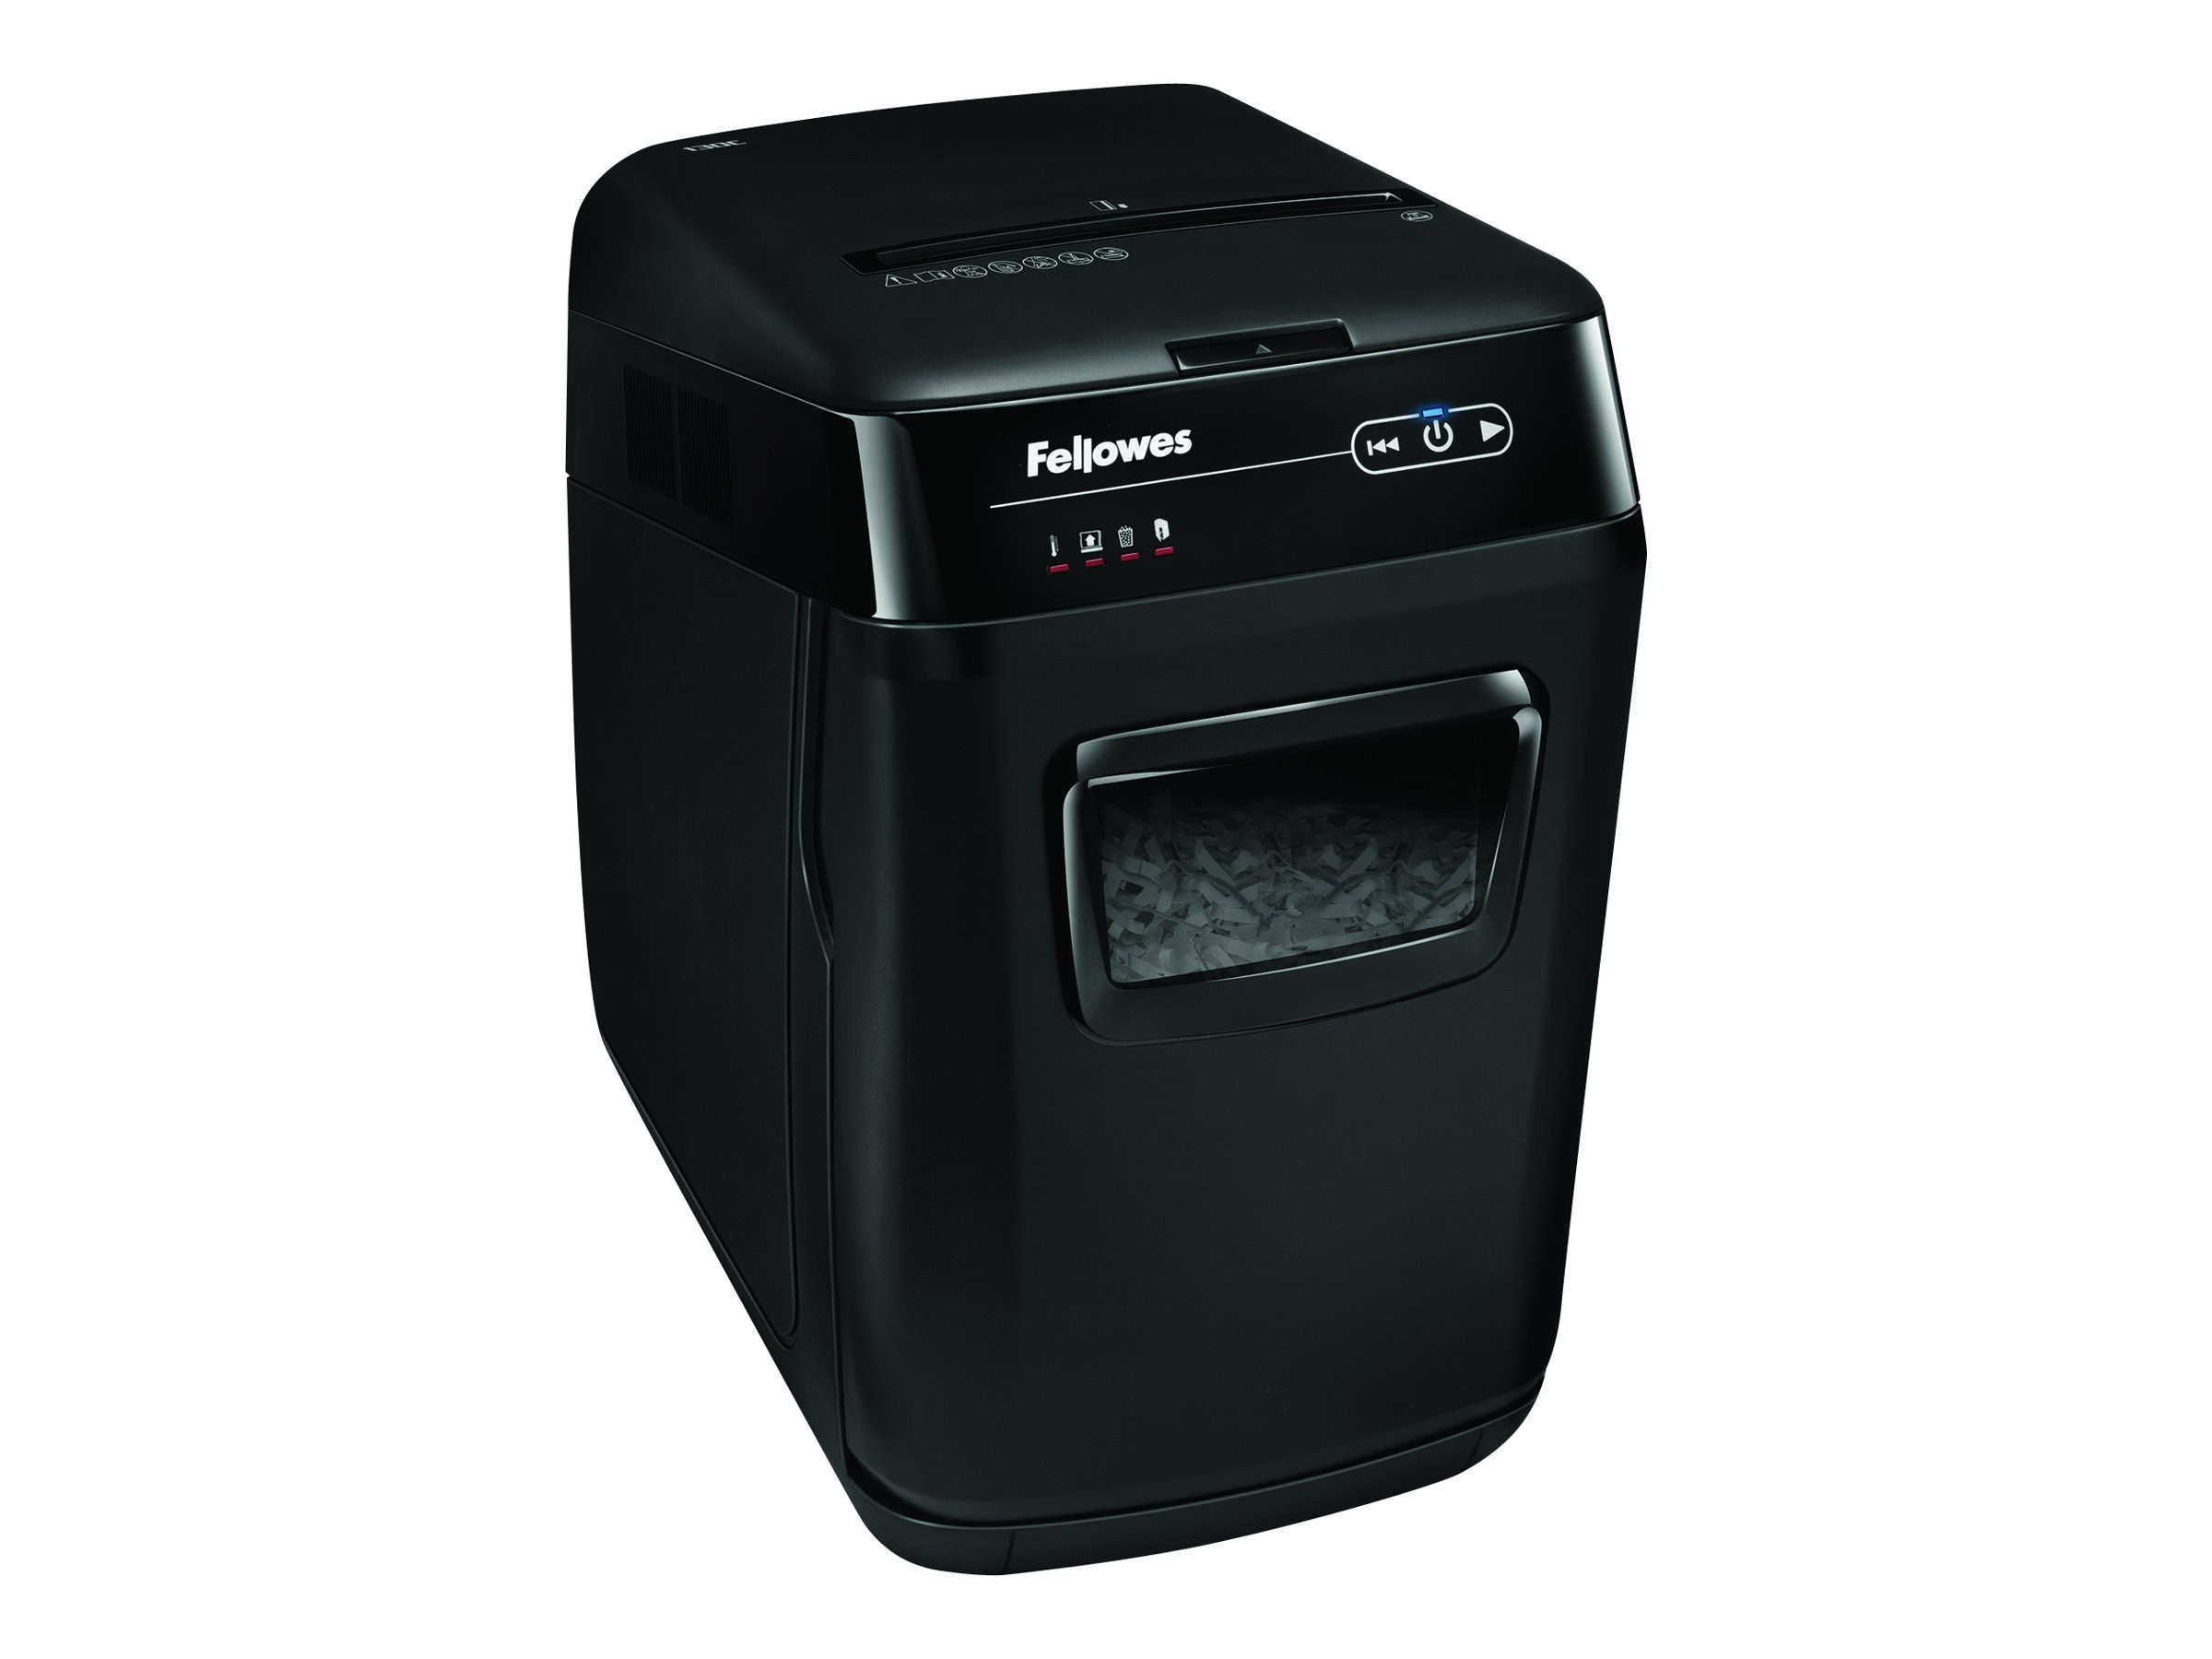 Fellowes 4680001 Image 3